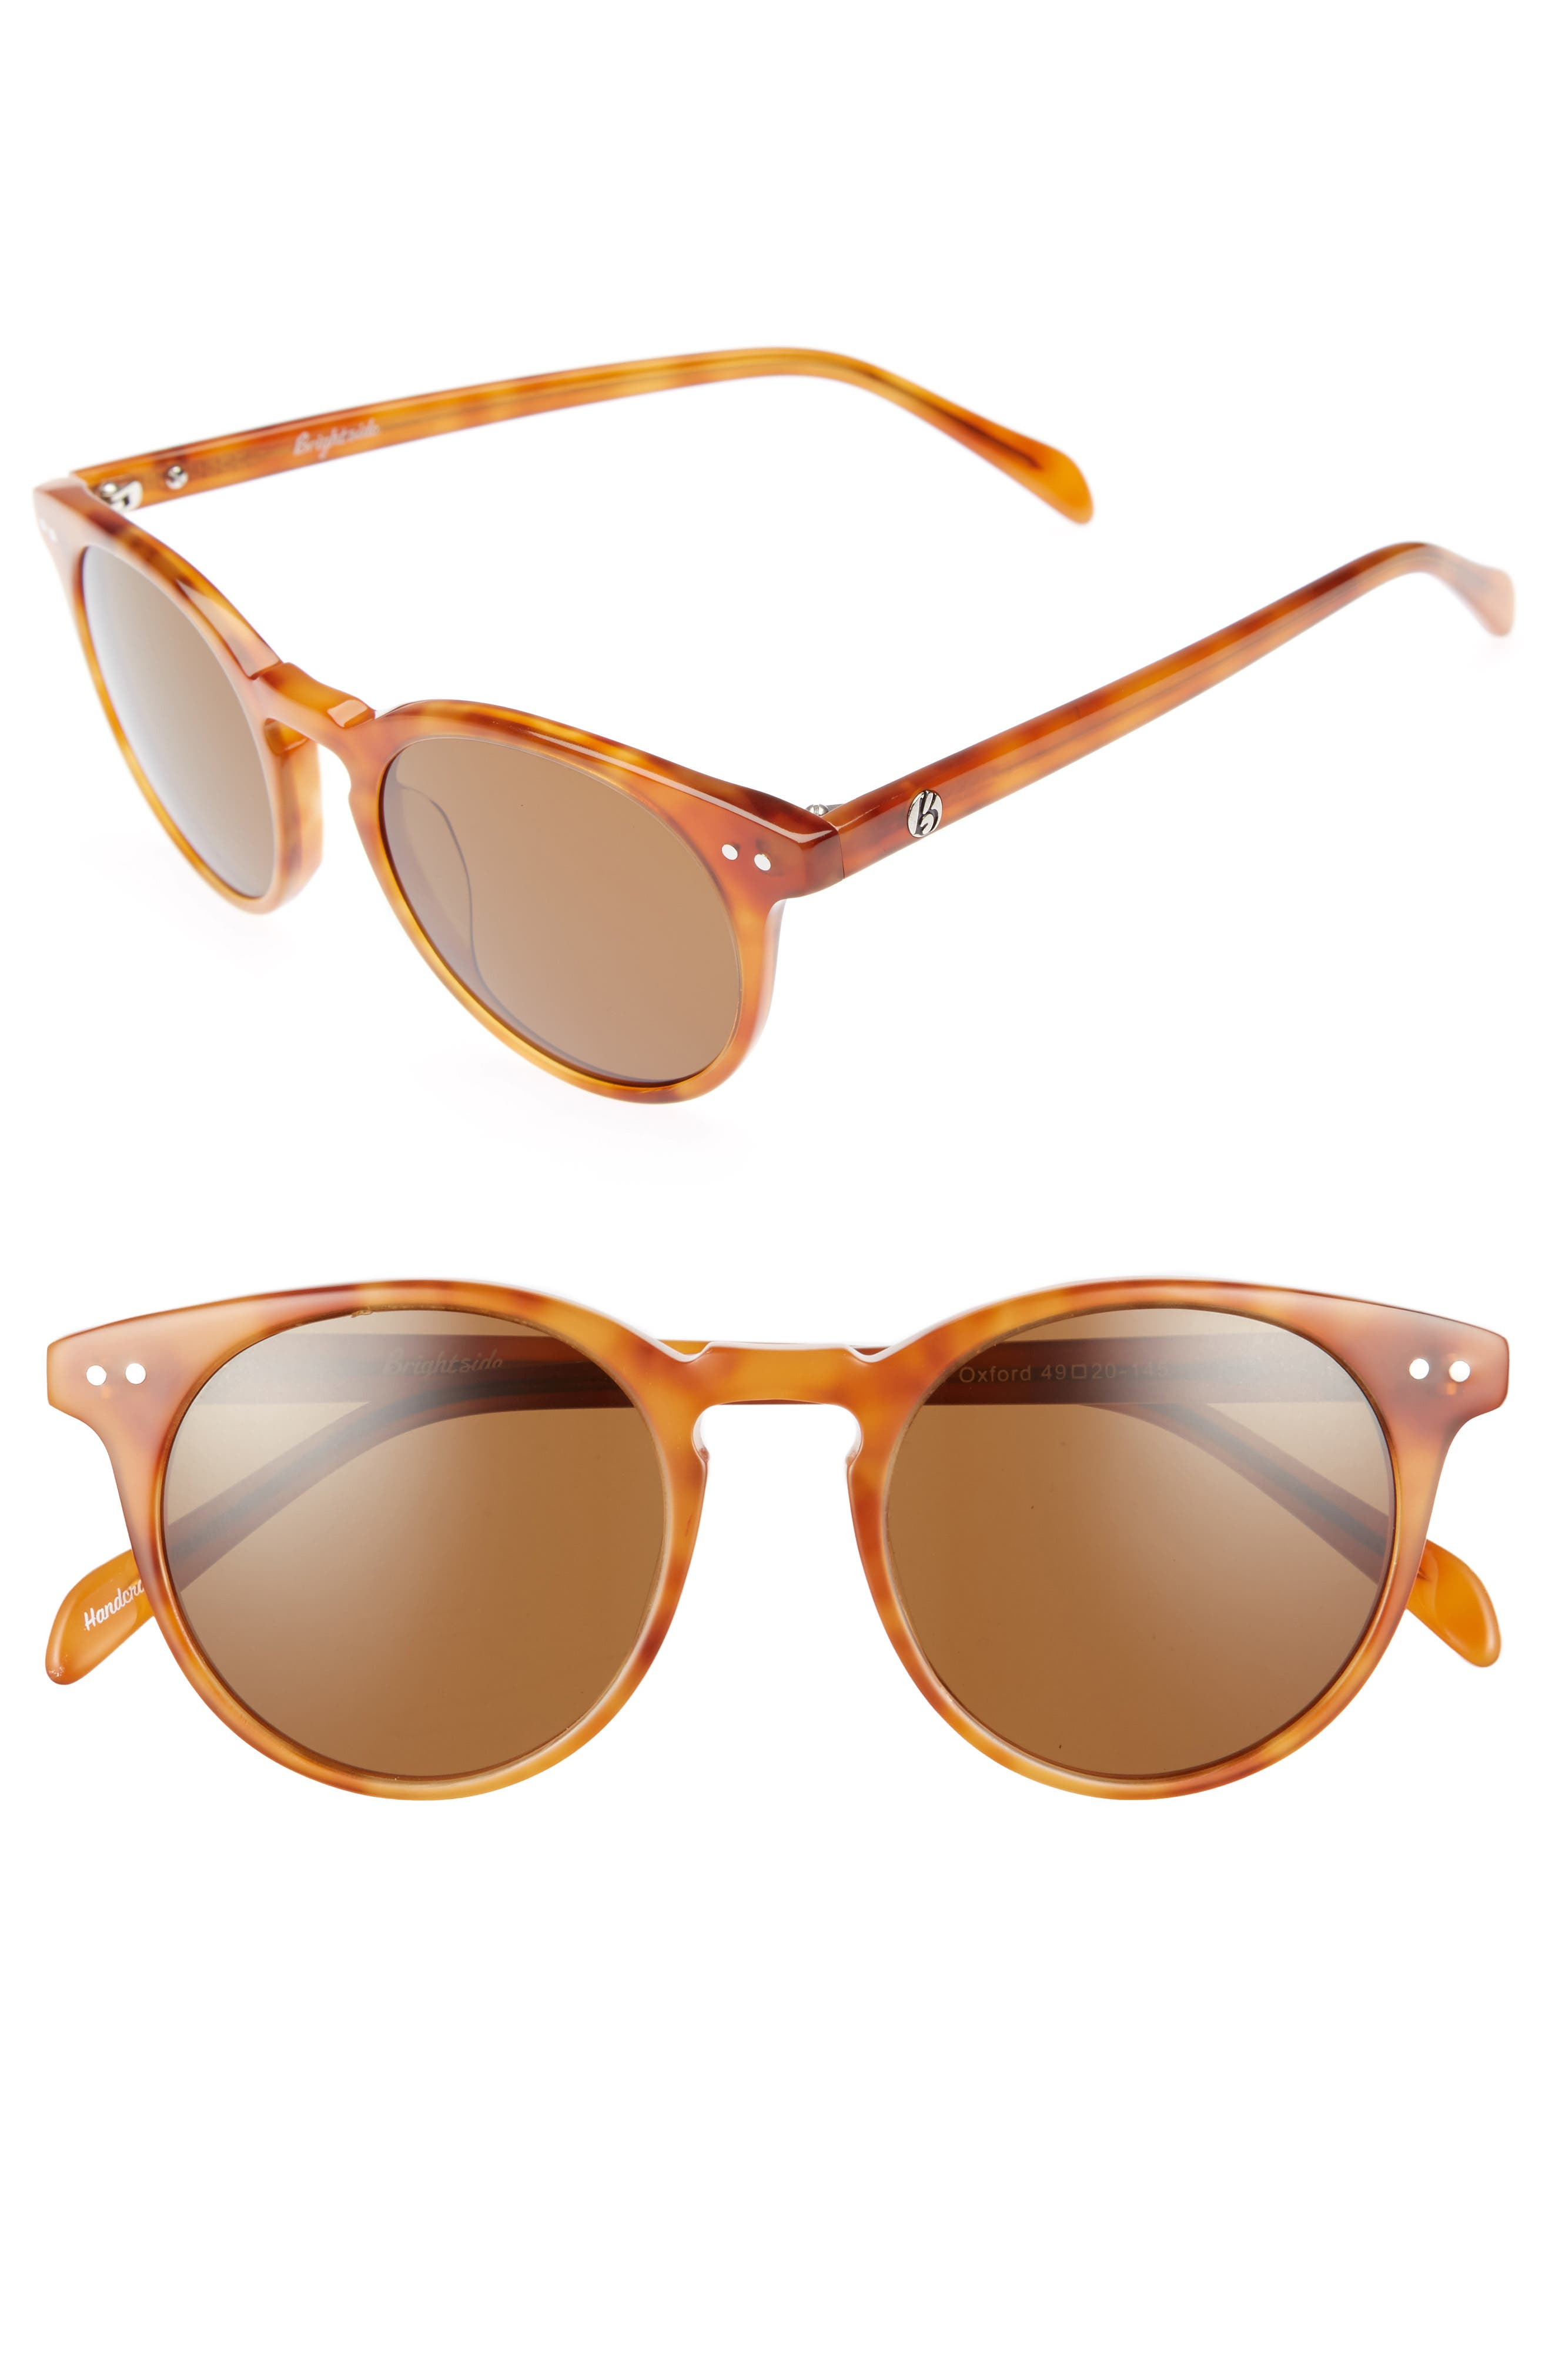 Oxford 49mm Sunglasses,                             Main thumbnail 1, color,                             Light Brown/ Brown